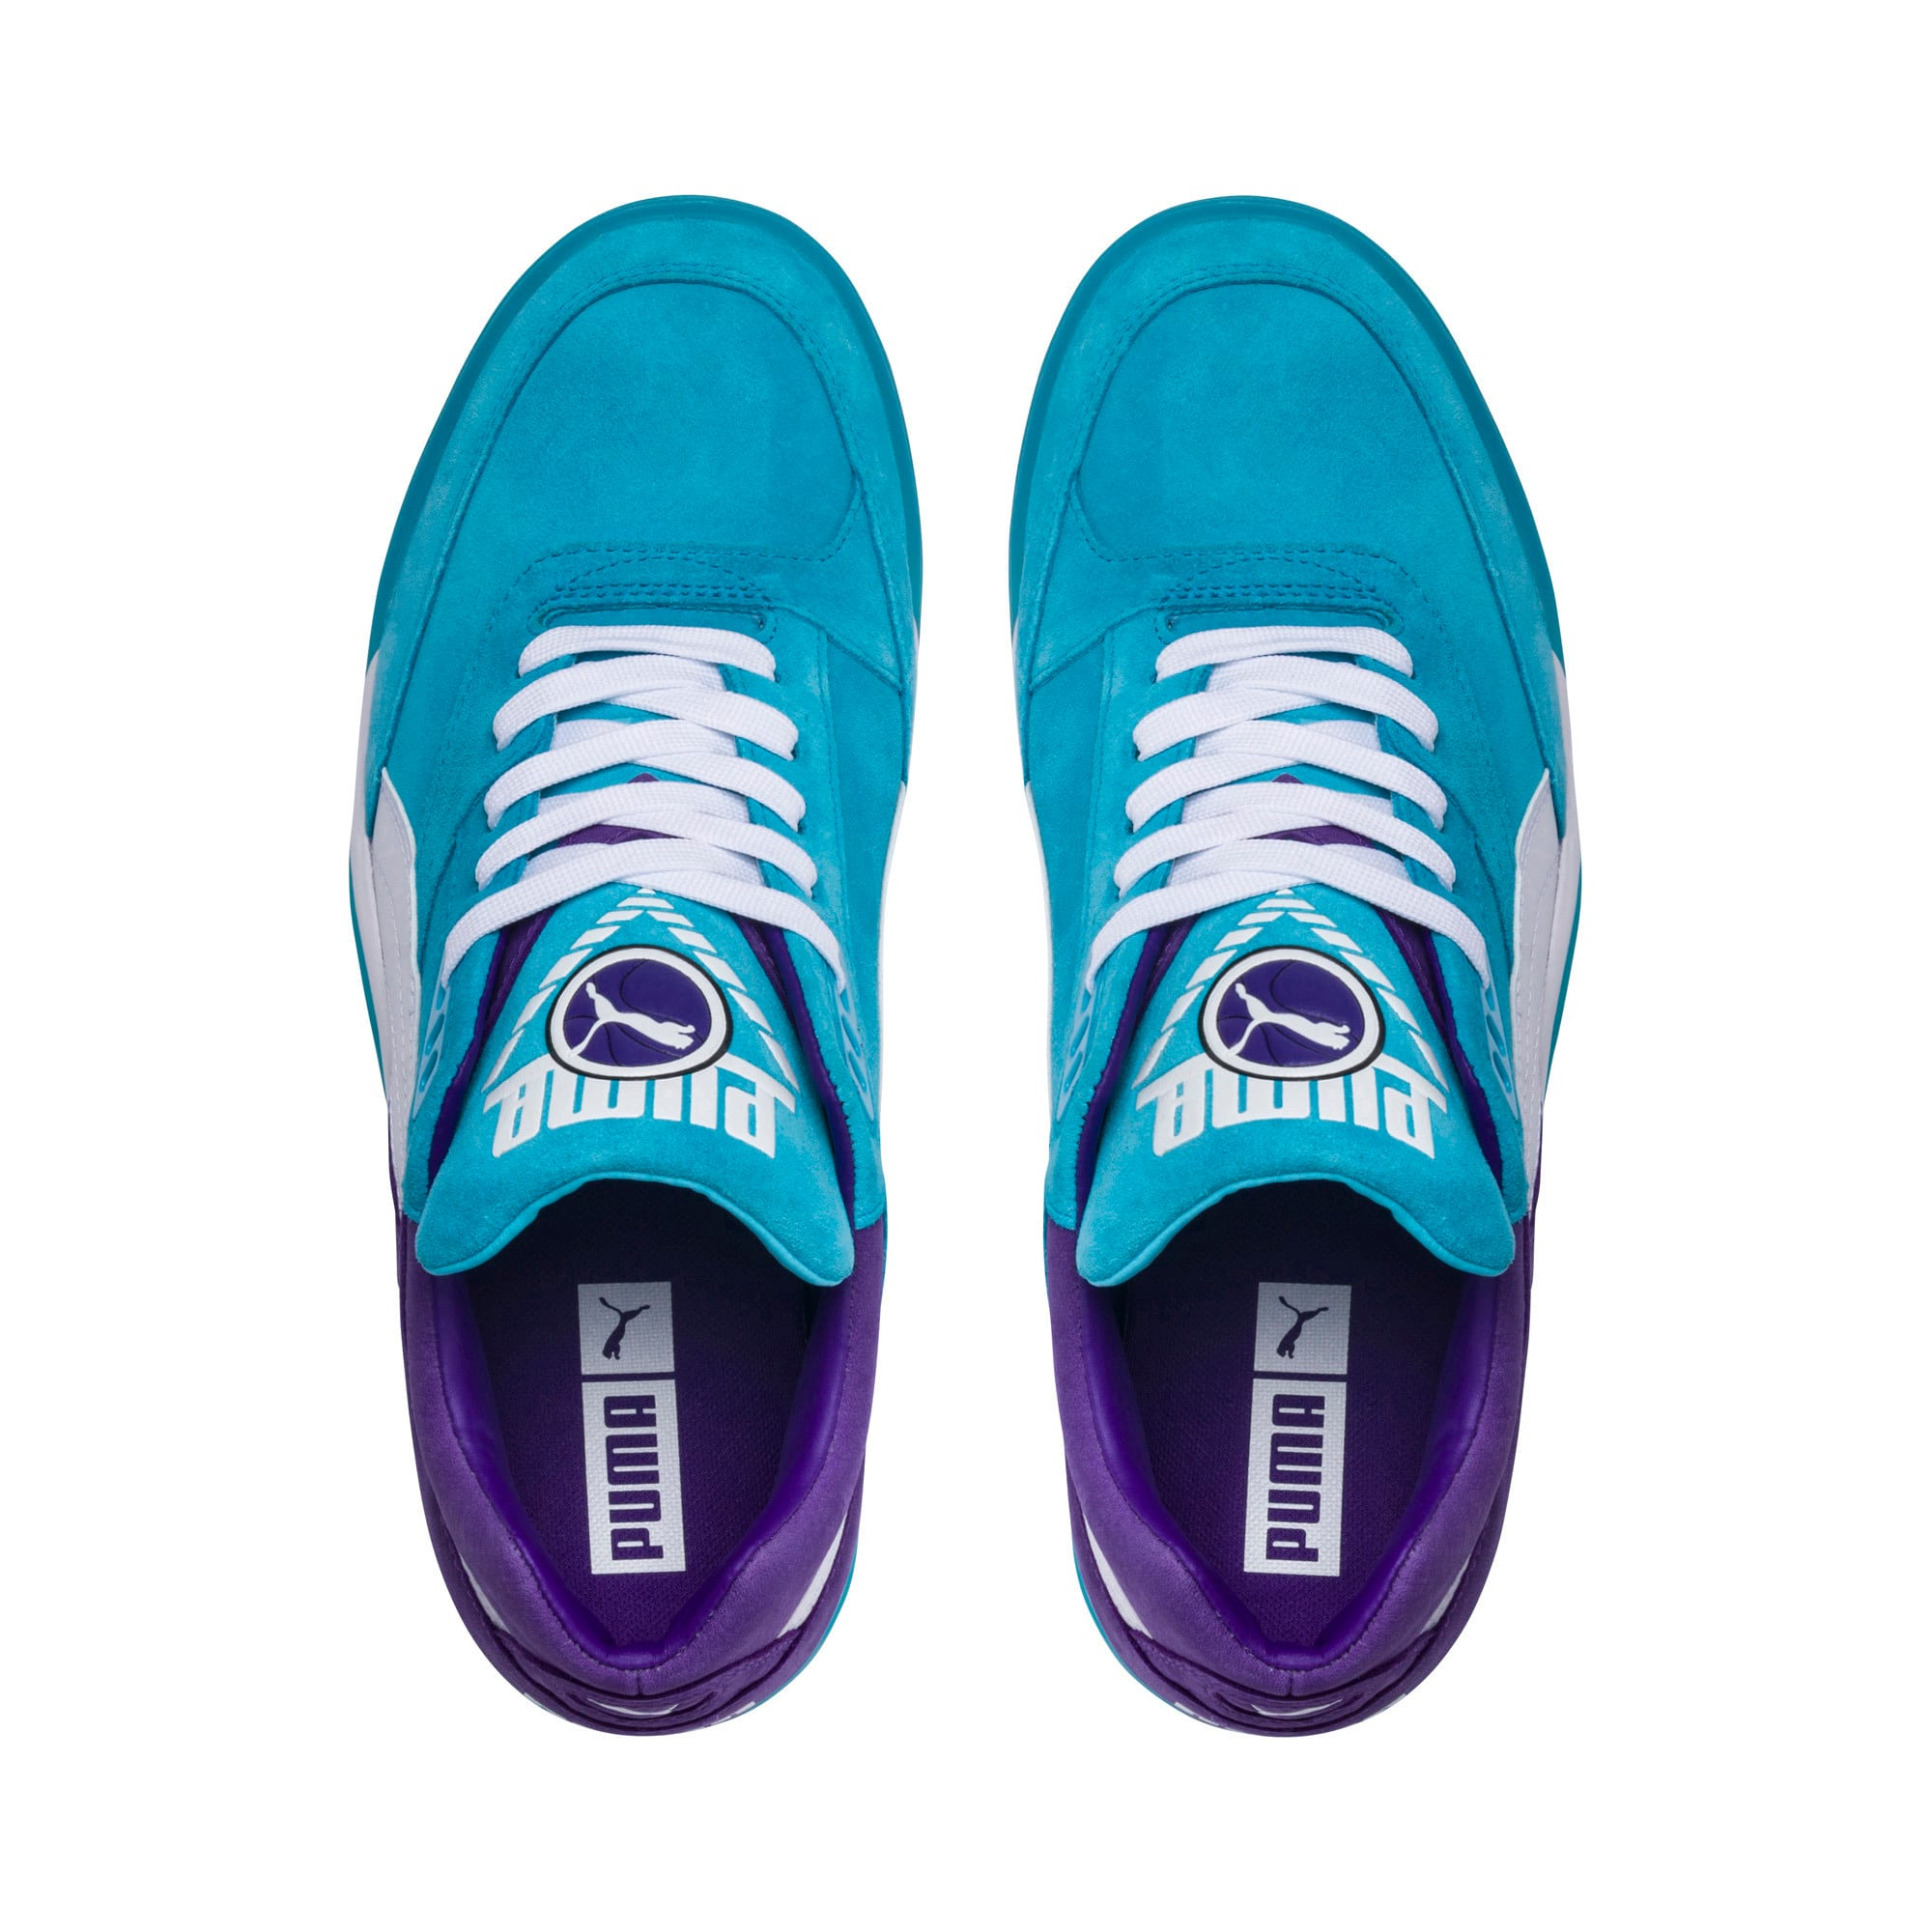 Thumbnail 6 of Palace Guard Queen City Sneakers, Blue Atoll-Prism Violet, medium